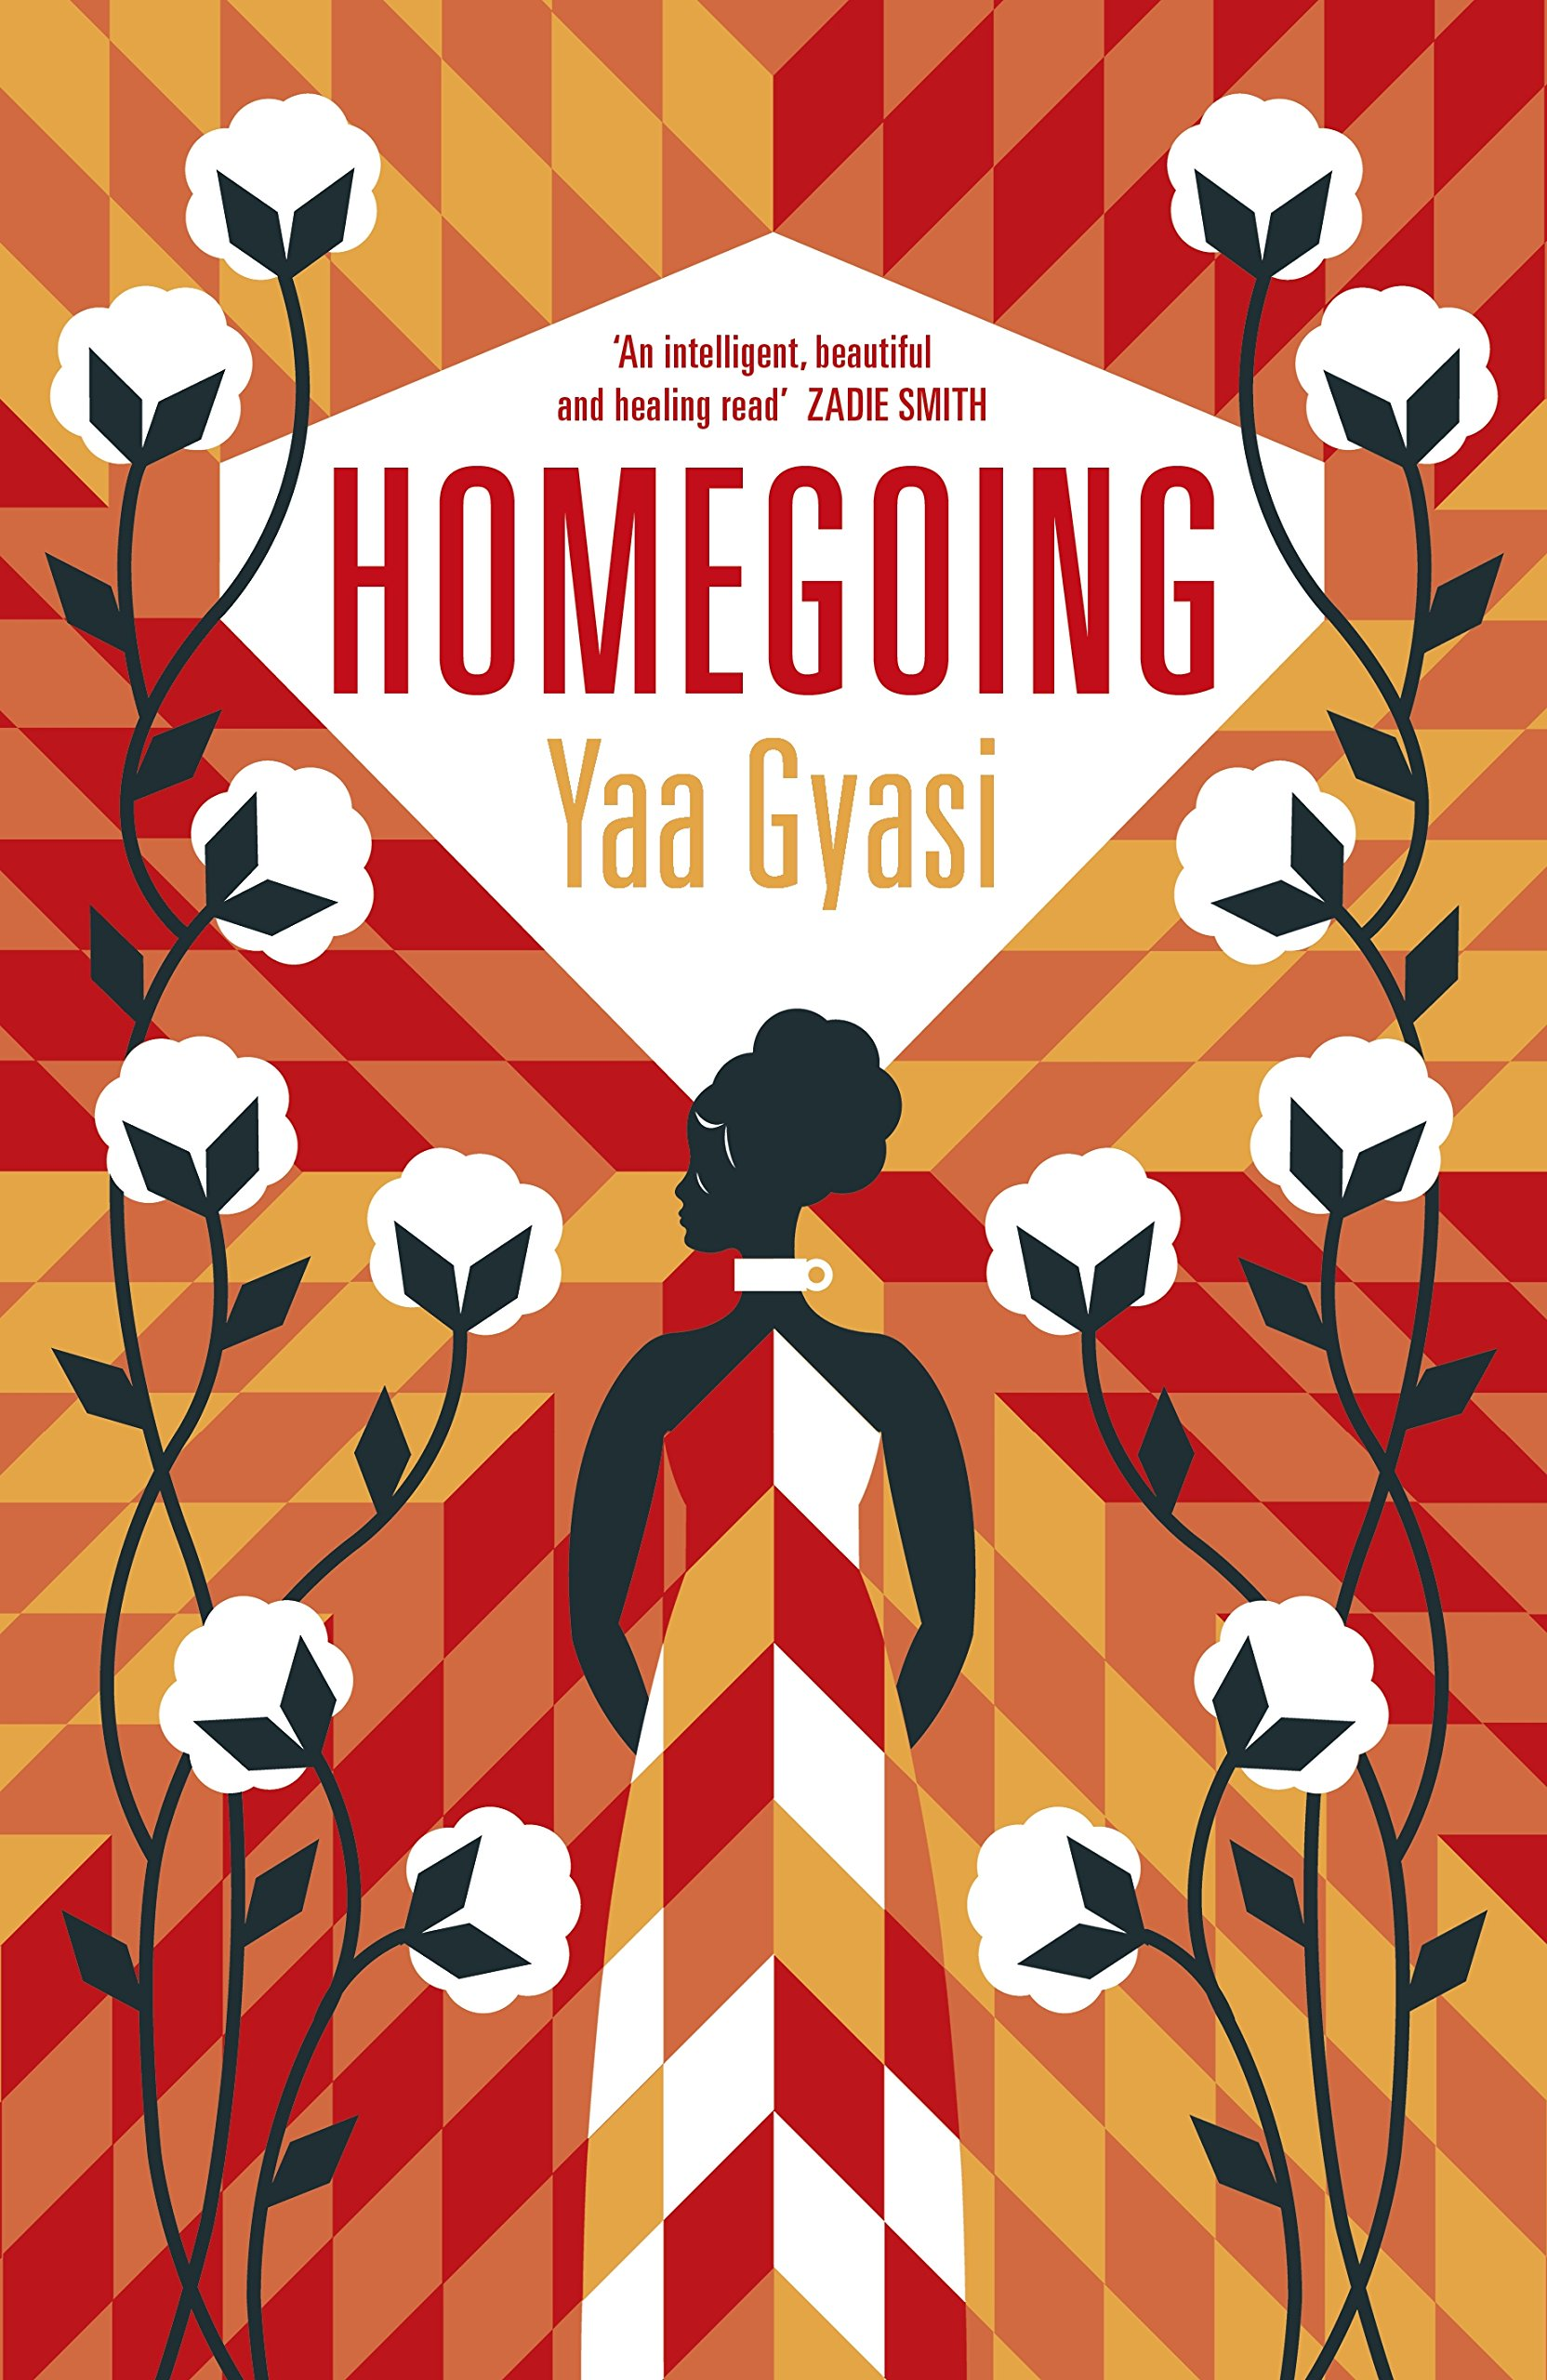 Homegoing by Yaa Gyasi, published by Penguin Random House